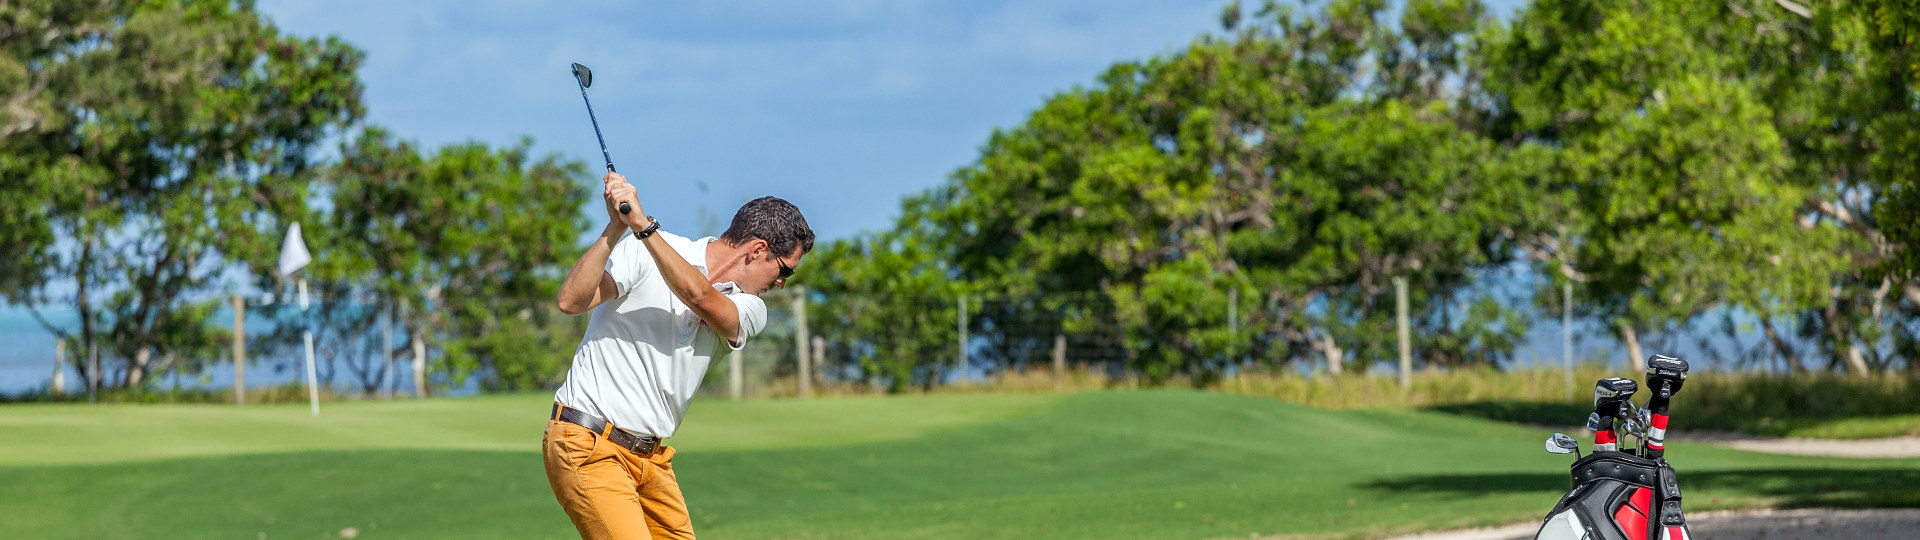 Deva golf course in Bourail New Caledonia